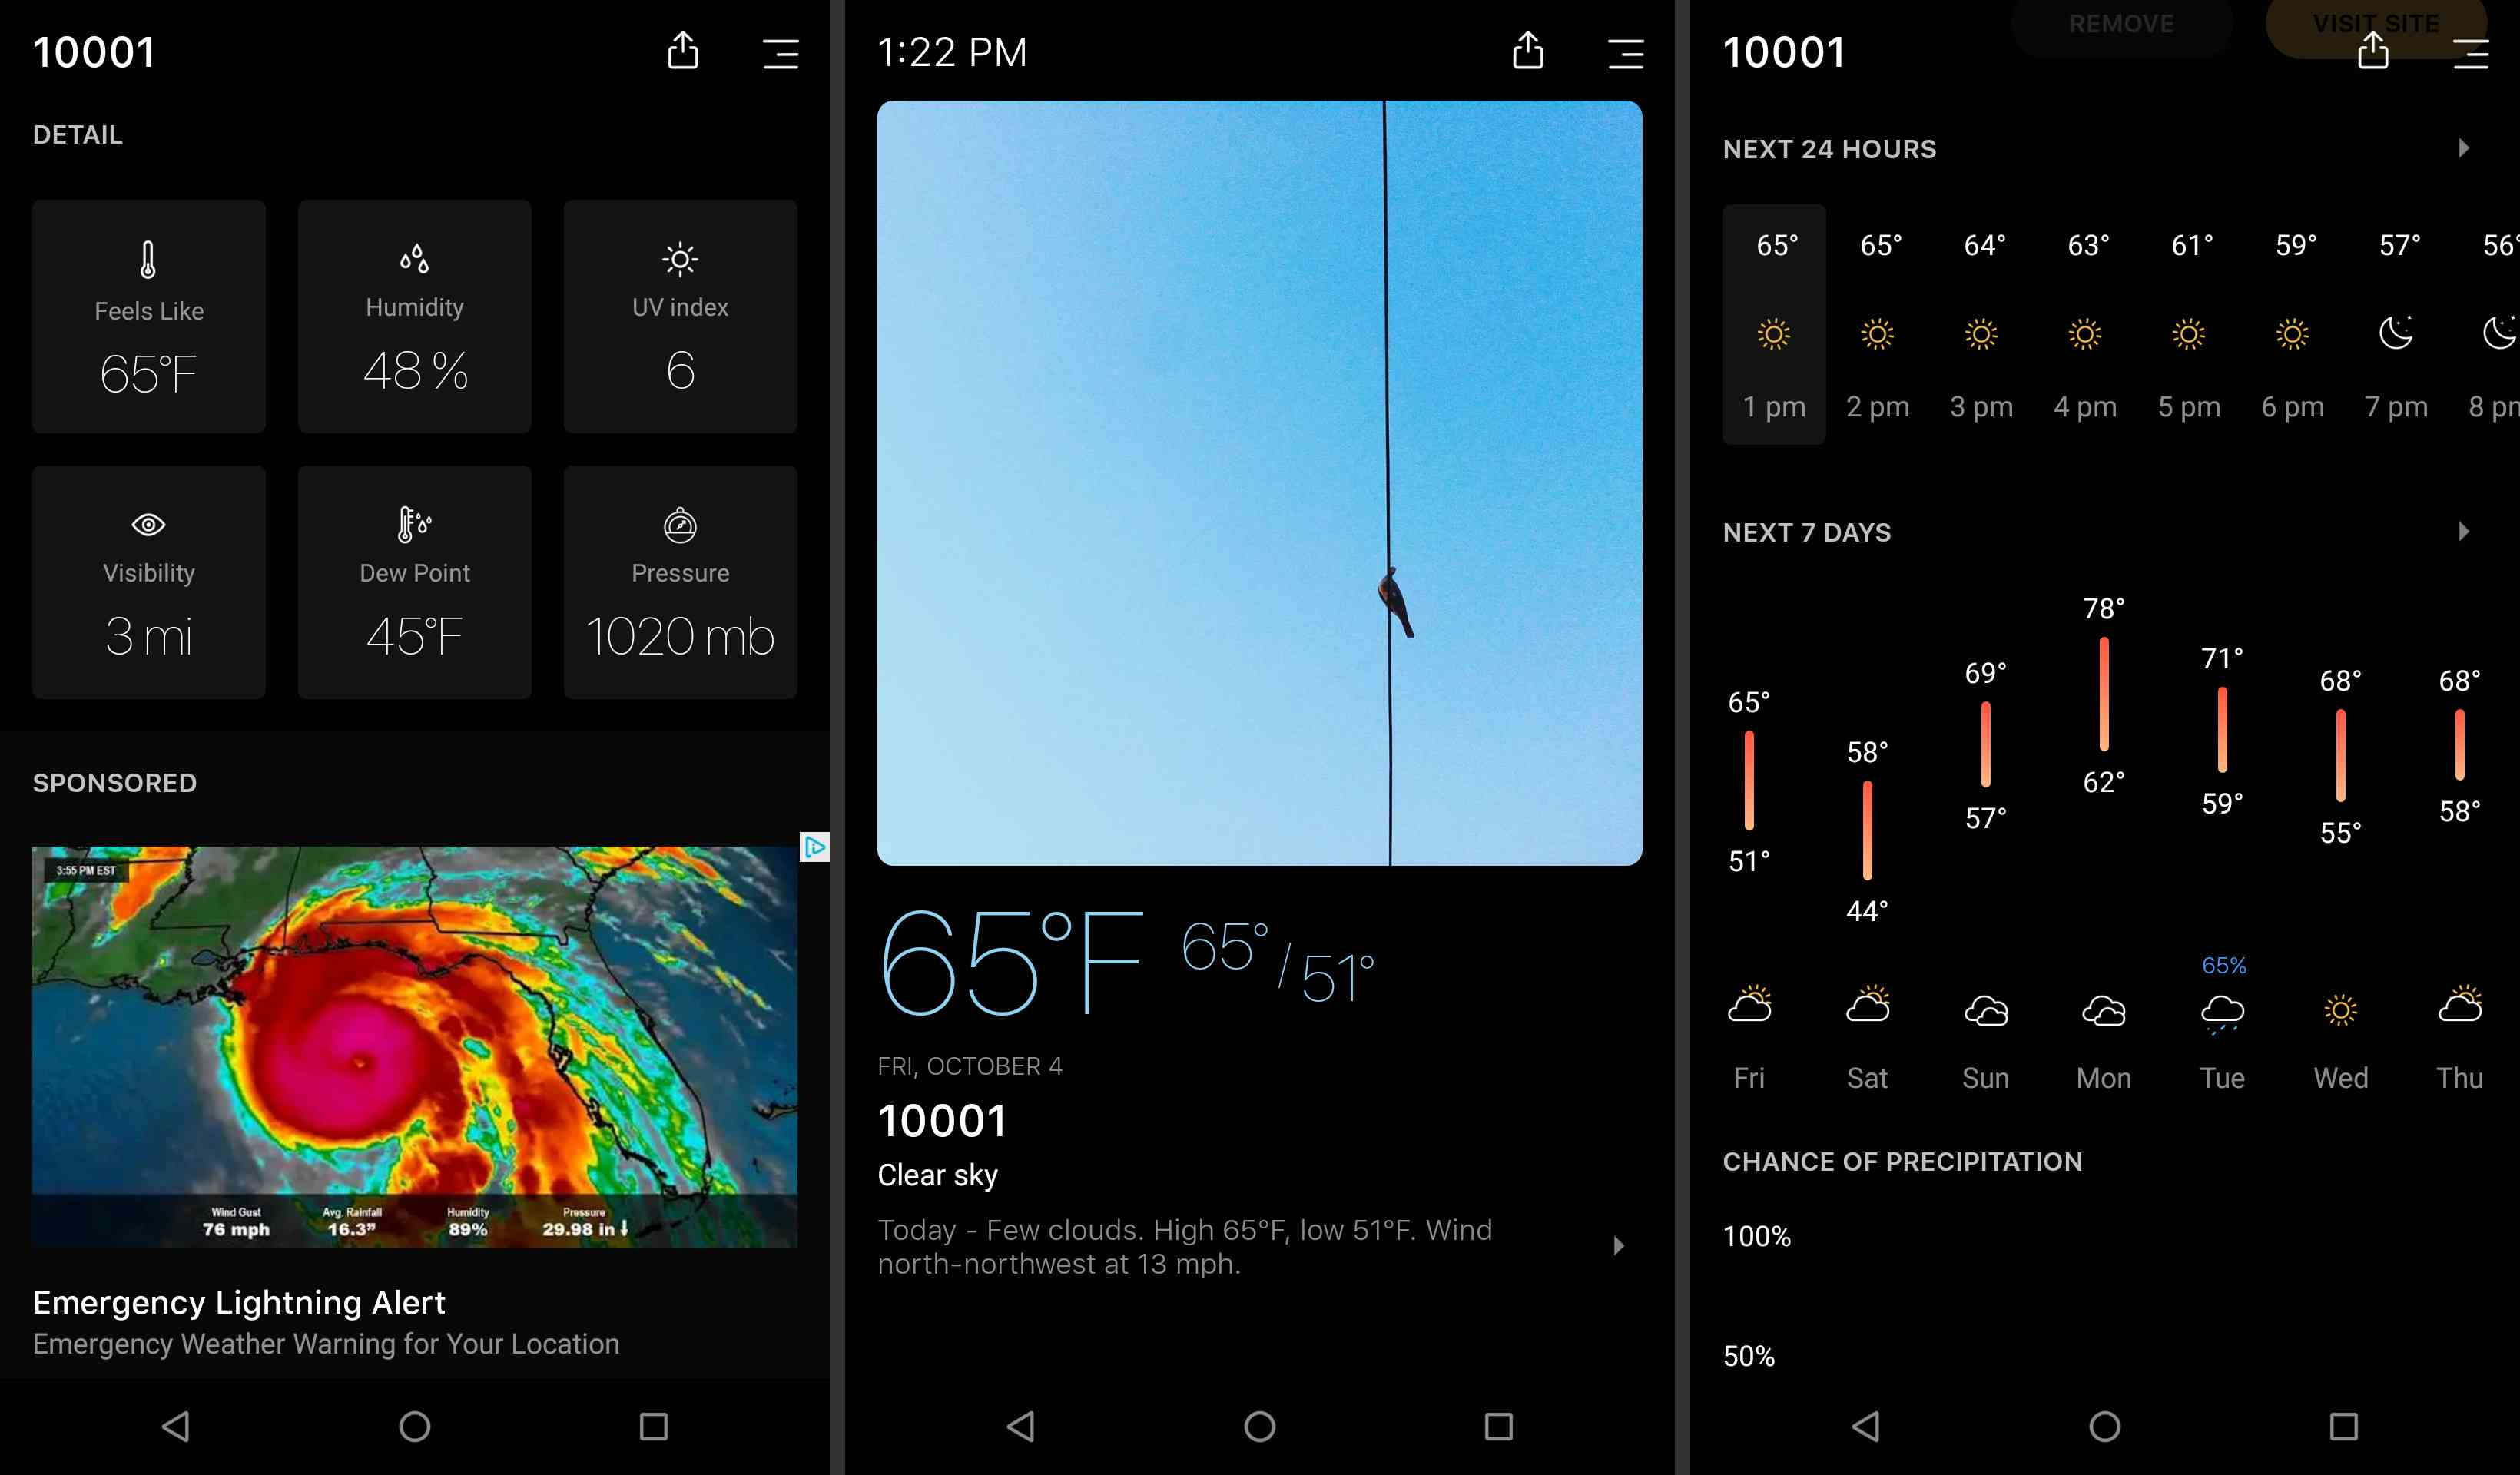 Android Today Weather